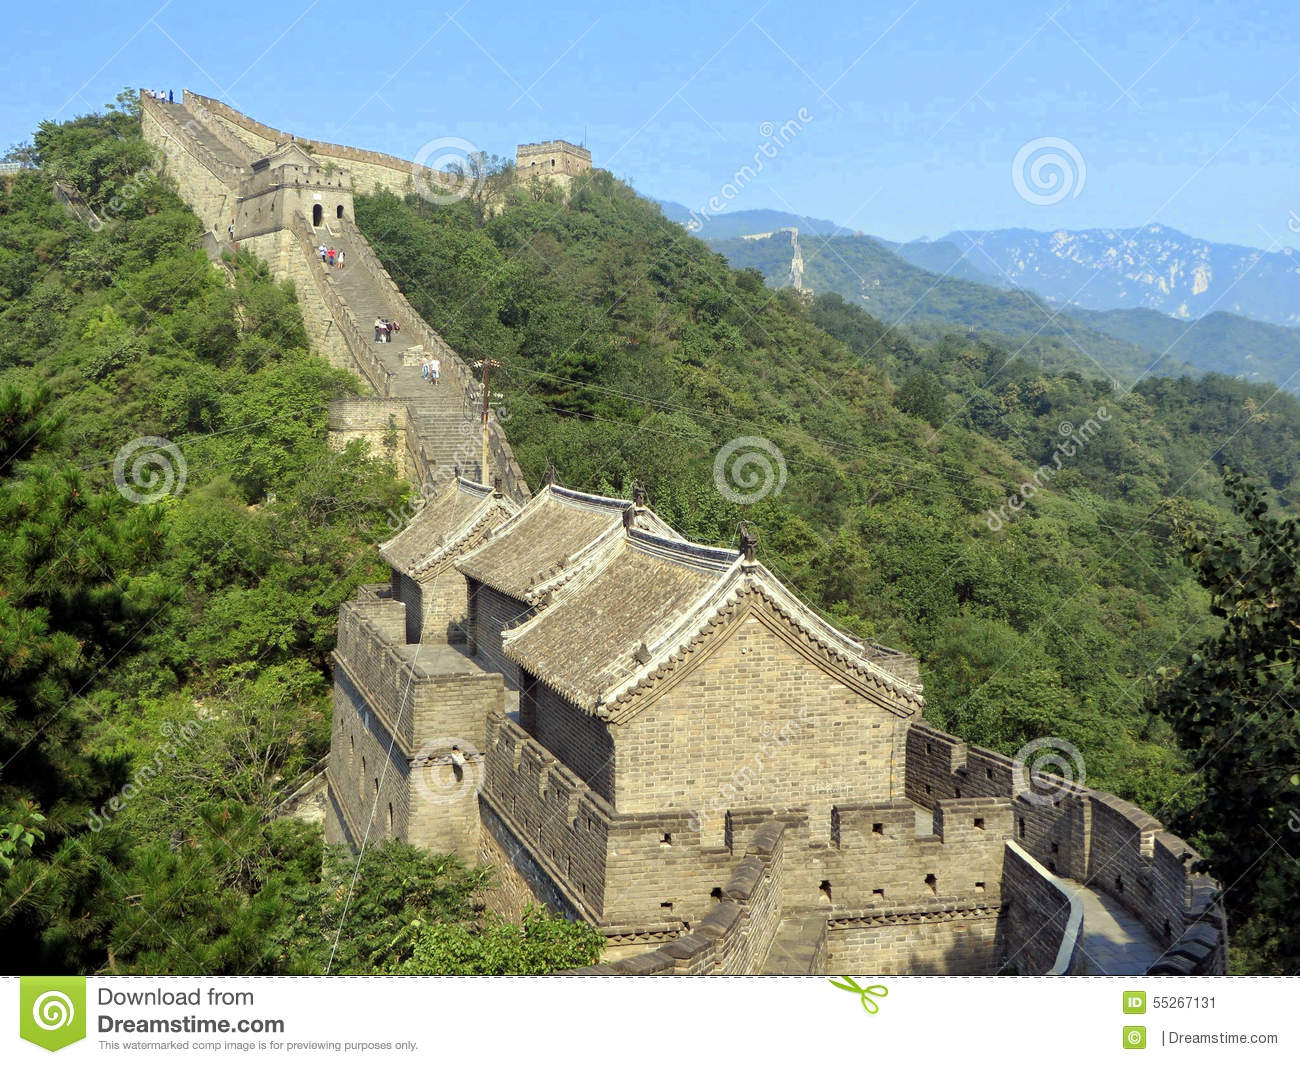 A section of the Great Wall of China one of the seven wonders of the modern world